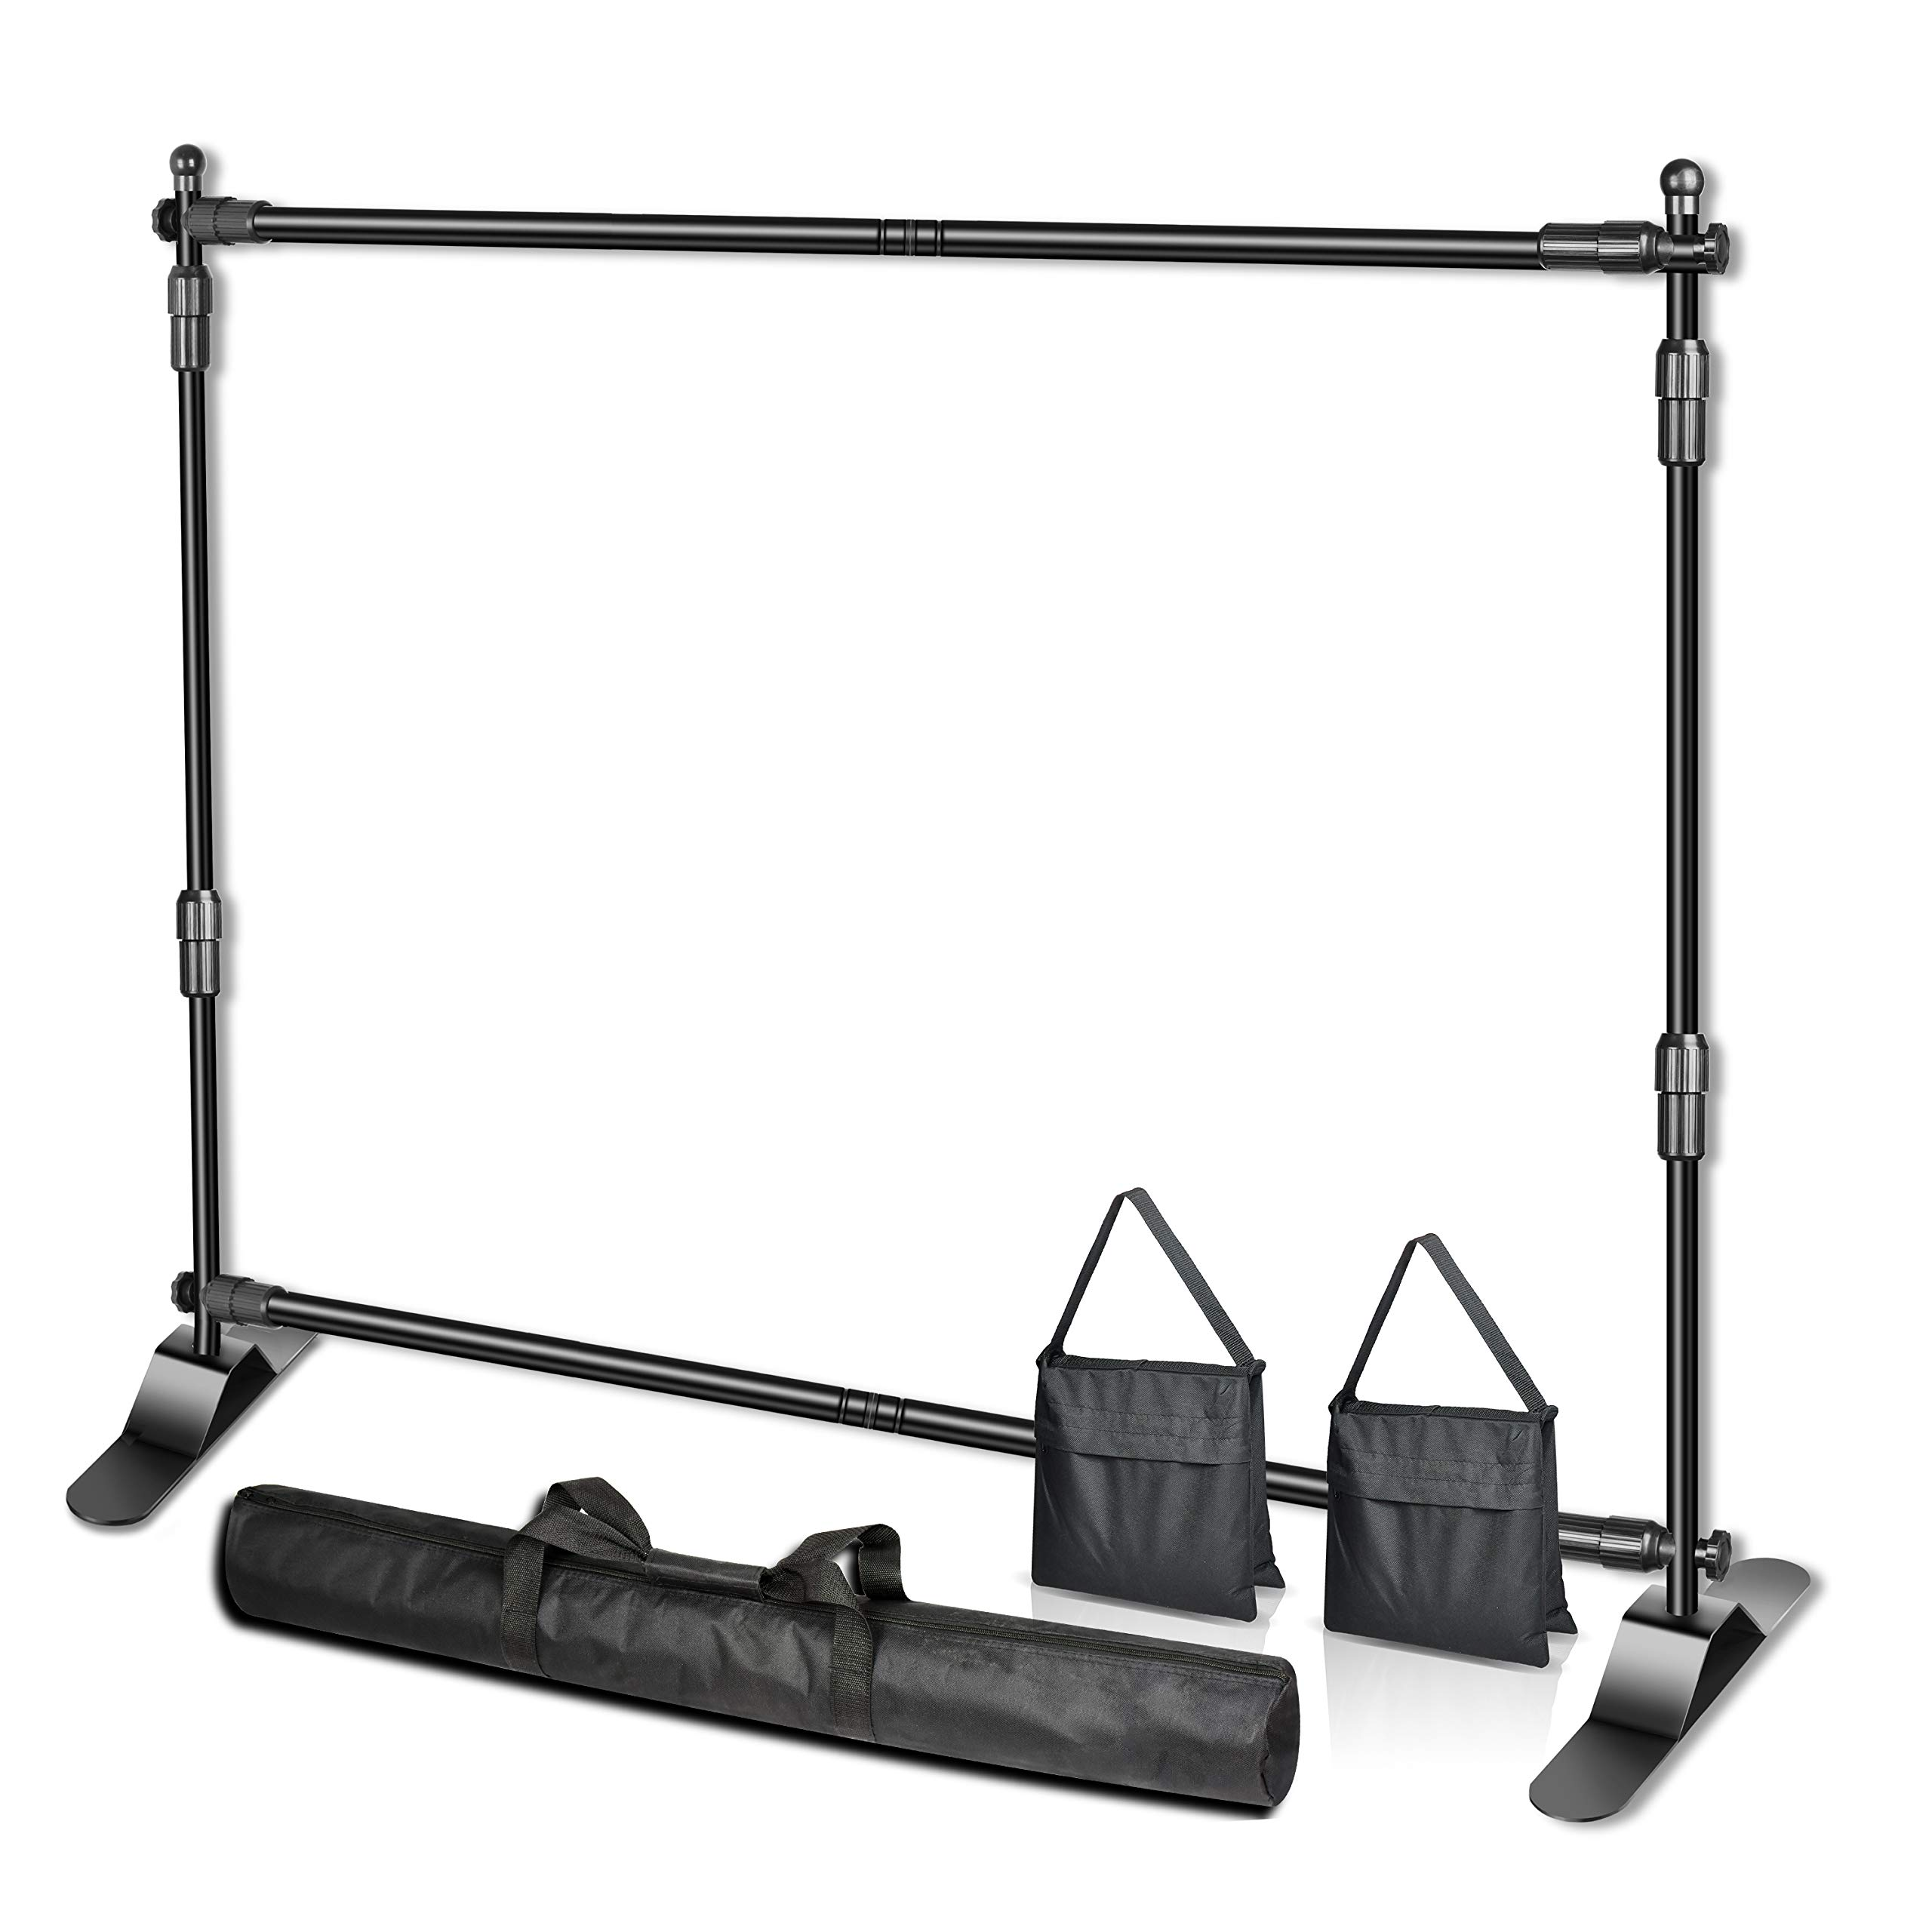 Emart 8 x 8 ft Adjustable Telescopic Tube Backdrop Banner Stand, Heavy Duty Step and Repeat Background Stand Kit for Photography Backdrop and Trade Show Display by EMART